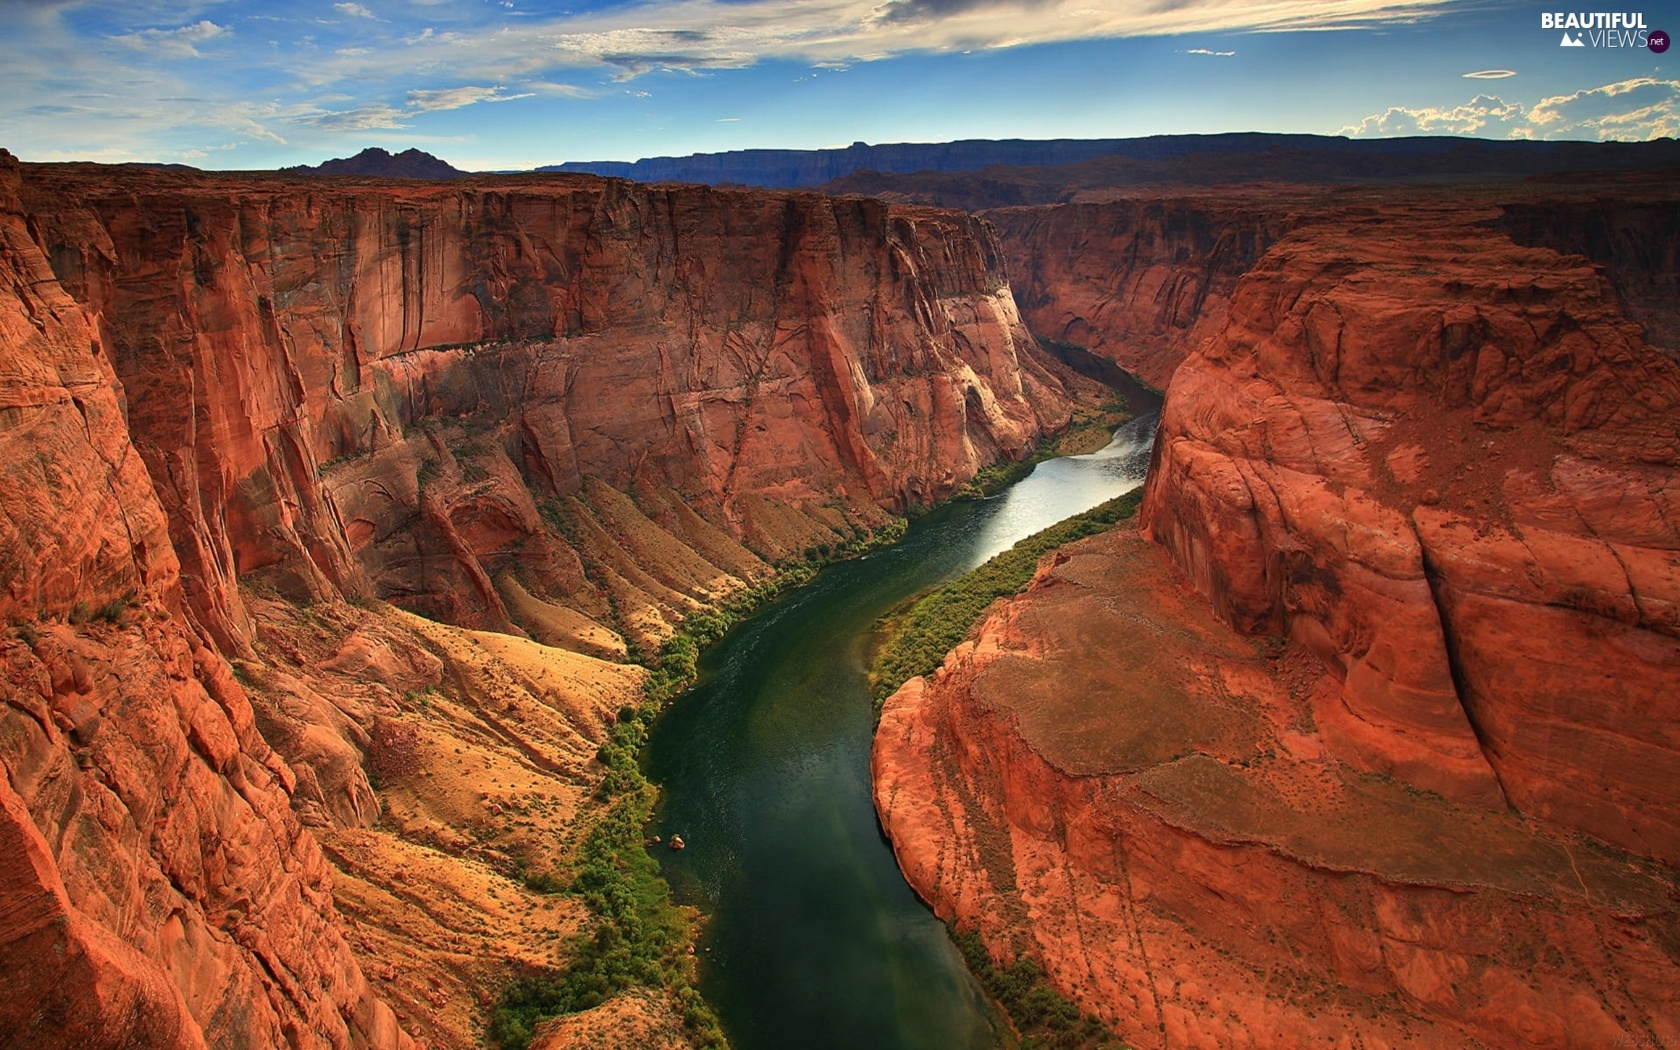 canyon, River